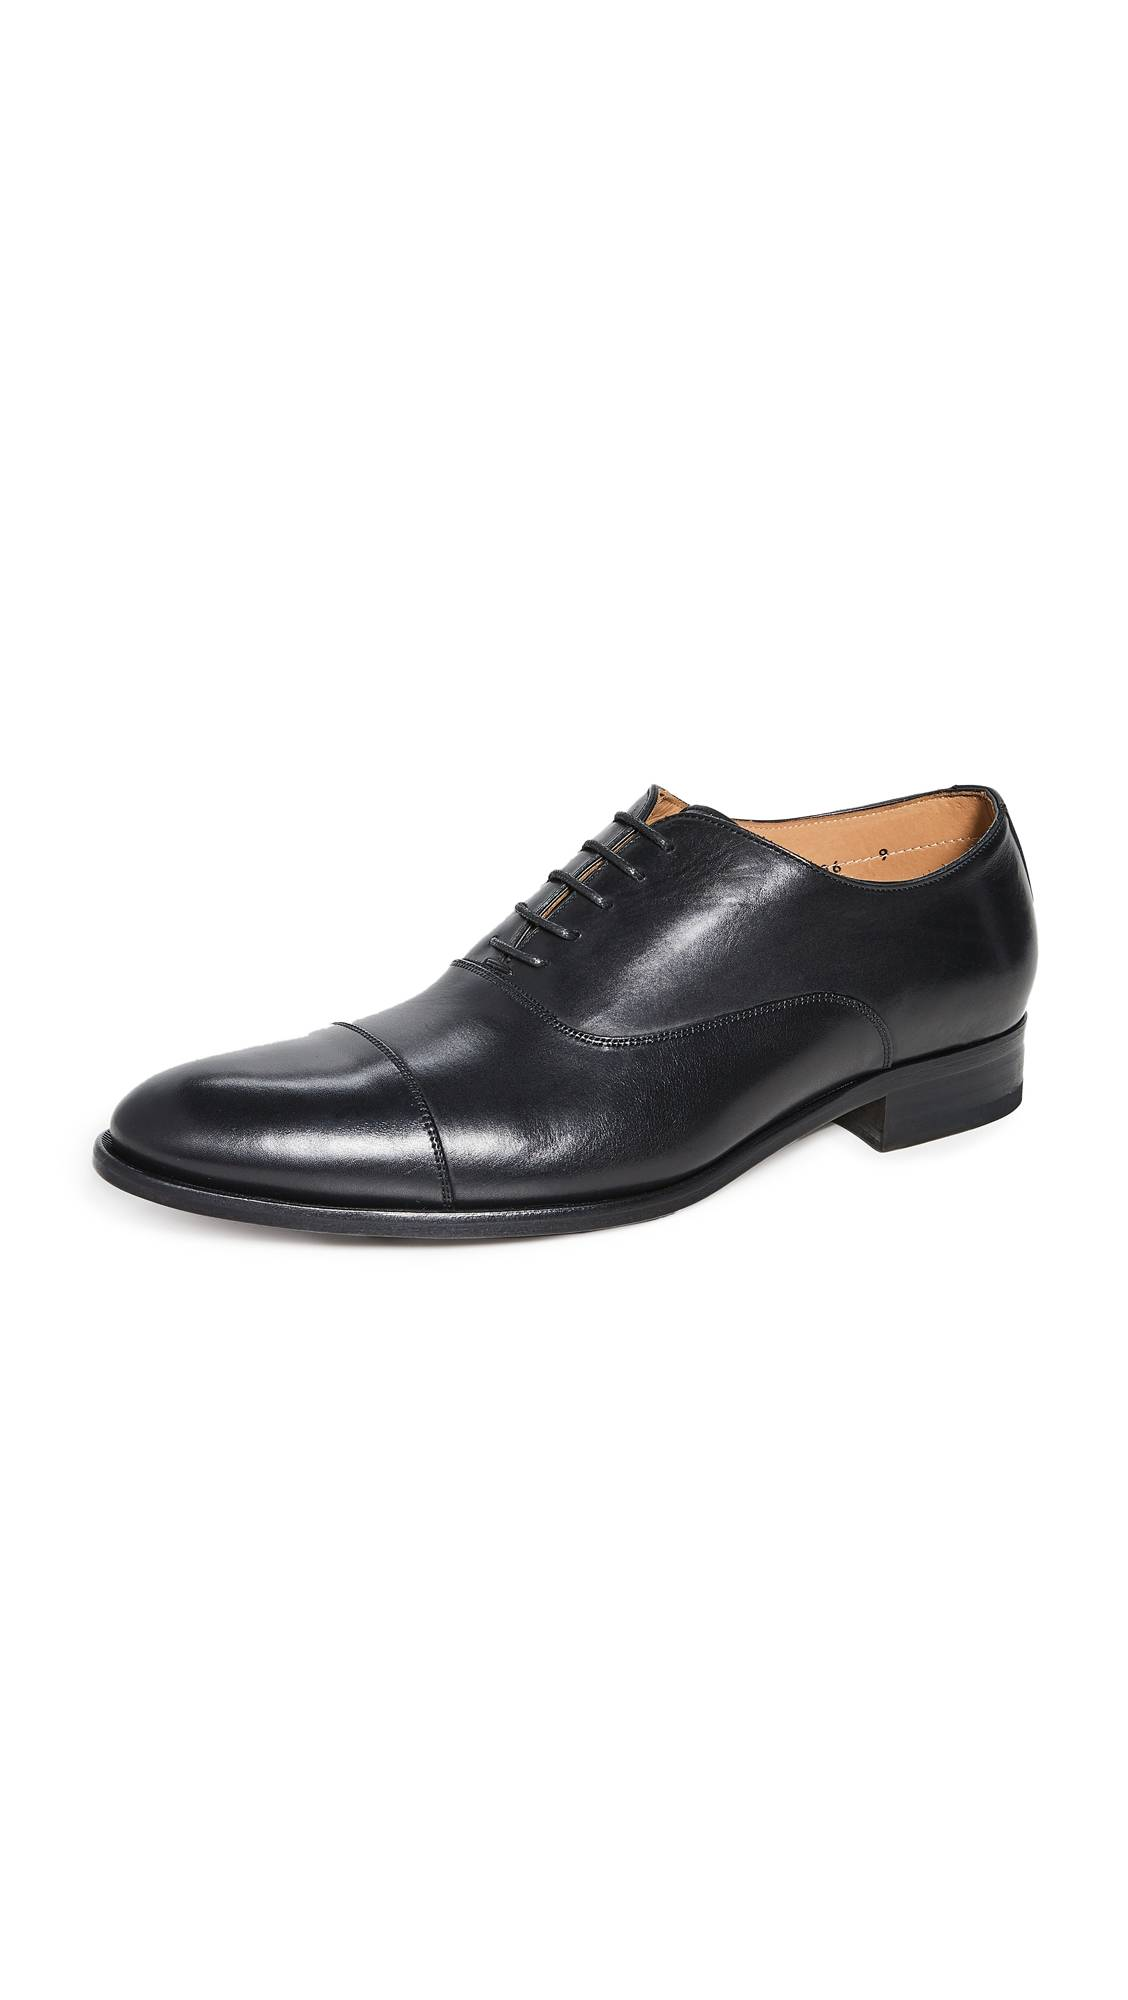 To Boot New York Forley Flex Black Cap Toe Shoes - Butter Nero Luc - Size: 12